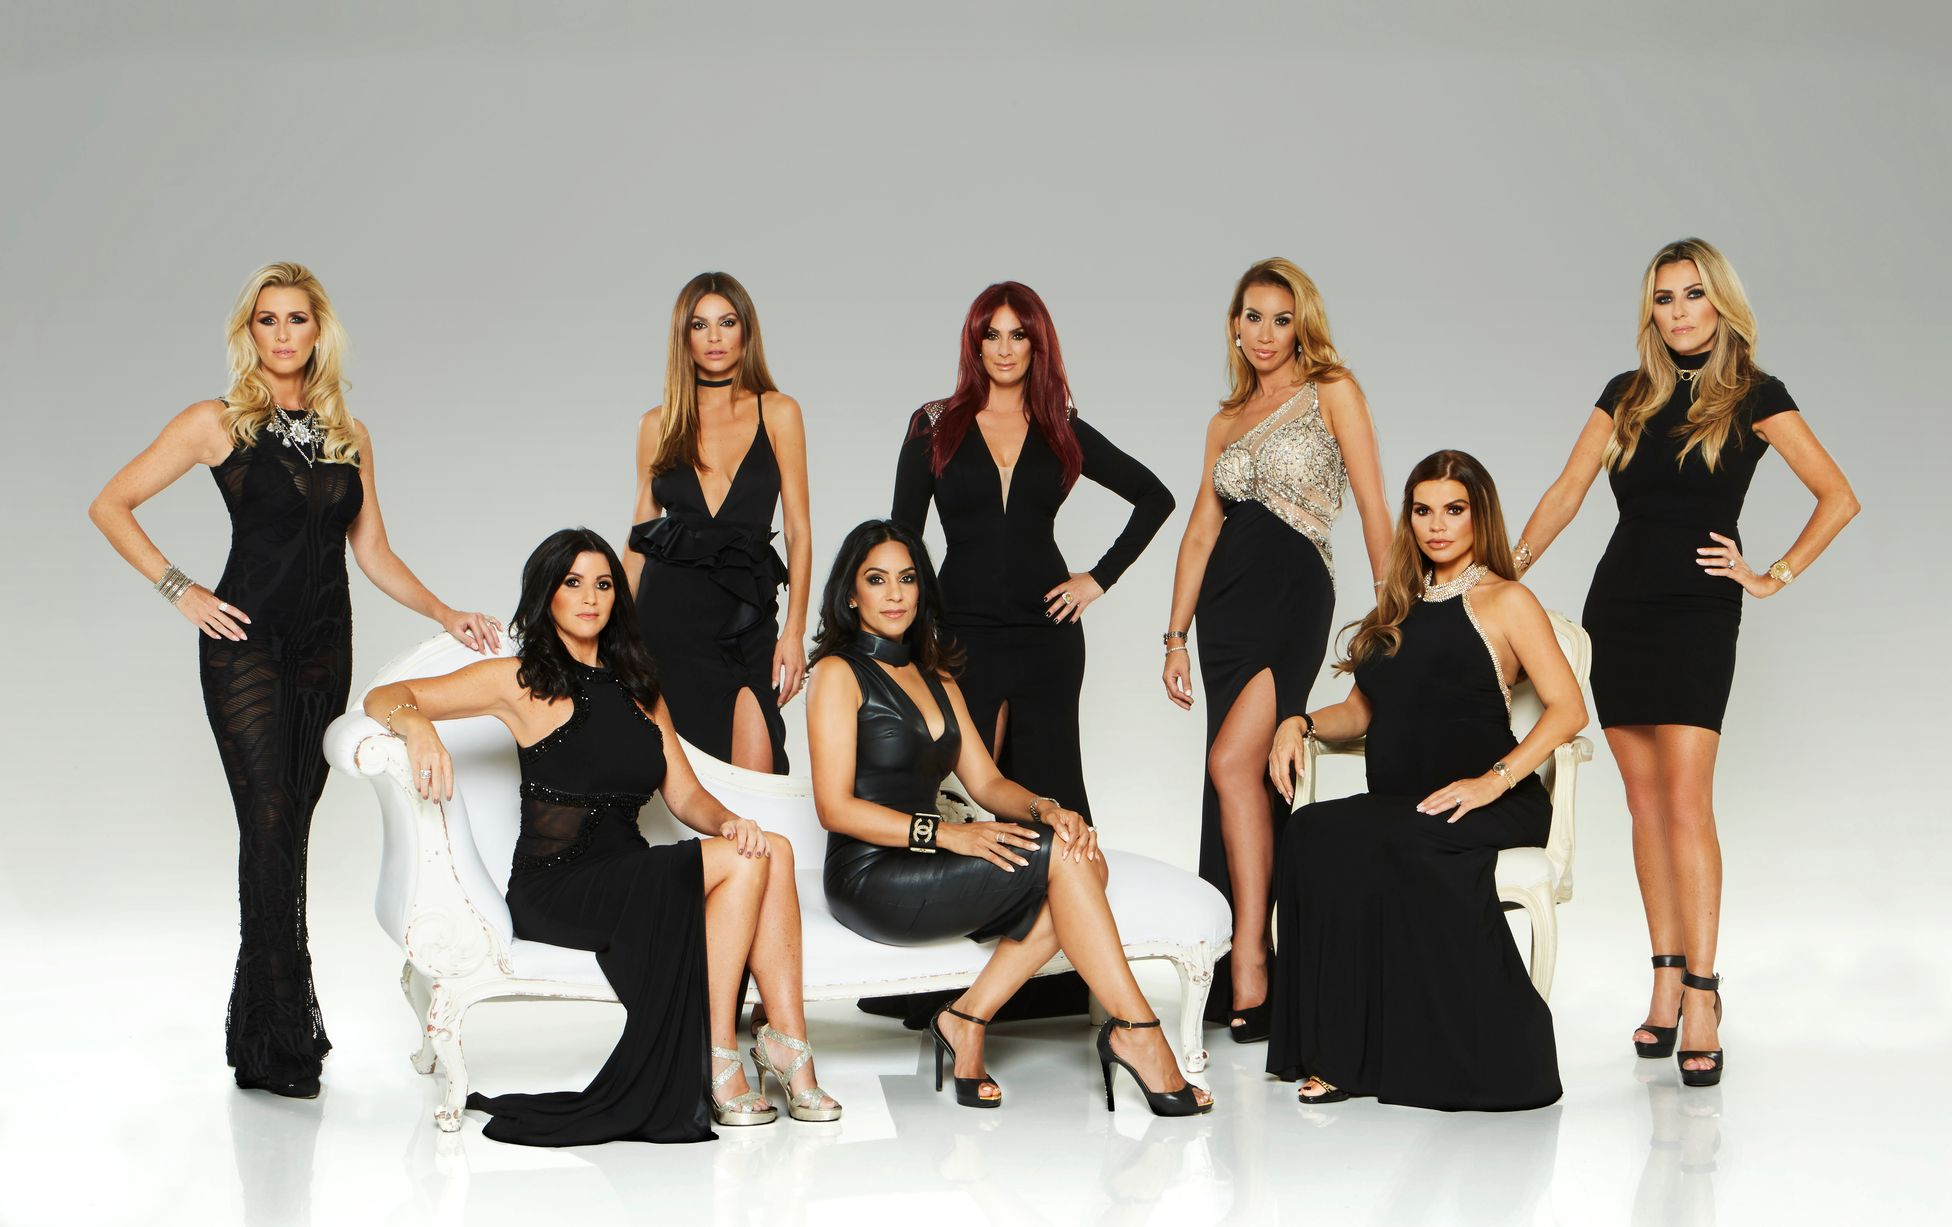 Real Housewives of Cheshire update